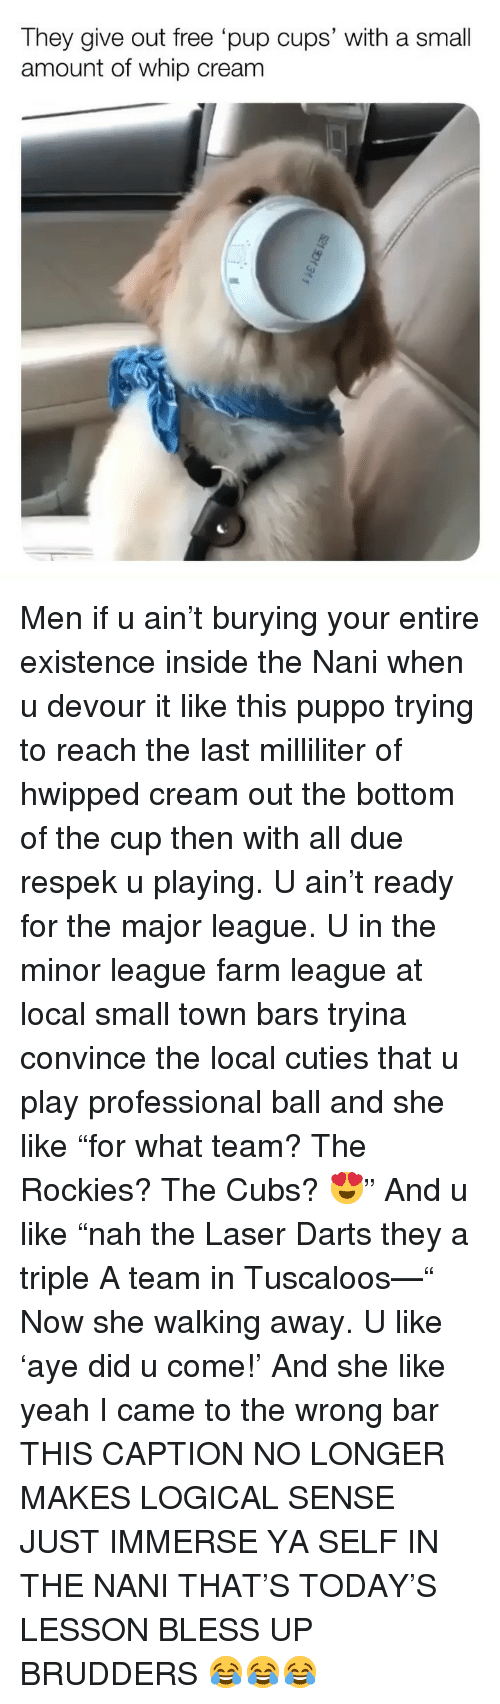 """Rockies: They give out free pup cups' with a small  amount of whip cream Men if u ain't burying your entire existence inside the Nani when u devour it like this puppo trying to reach the last milliliter of hwipped cream out the bottom of the cup then with all due respek u playing. U ain't ready for the major league. U in the minor league farm league at local small town bars tryina convince the local cuties that u play professional ball and she like """"for what team? The Rockies? The Cubs? 😍"""" And u like """"nah the Laser Darts they a triple A team in Tuscaloos—"""" Now she walking away. U like 'aye did u come!' And she like yeah I came to the wrong bar THIS CAPTION NO LONGER MAKES LOGICAL SENSE JUST IMMERSE YA SELF IN THE NANI THAT'S TODAY'S LESSON BLESS UP BRUDDERS 😂😂😂"""